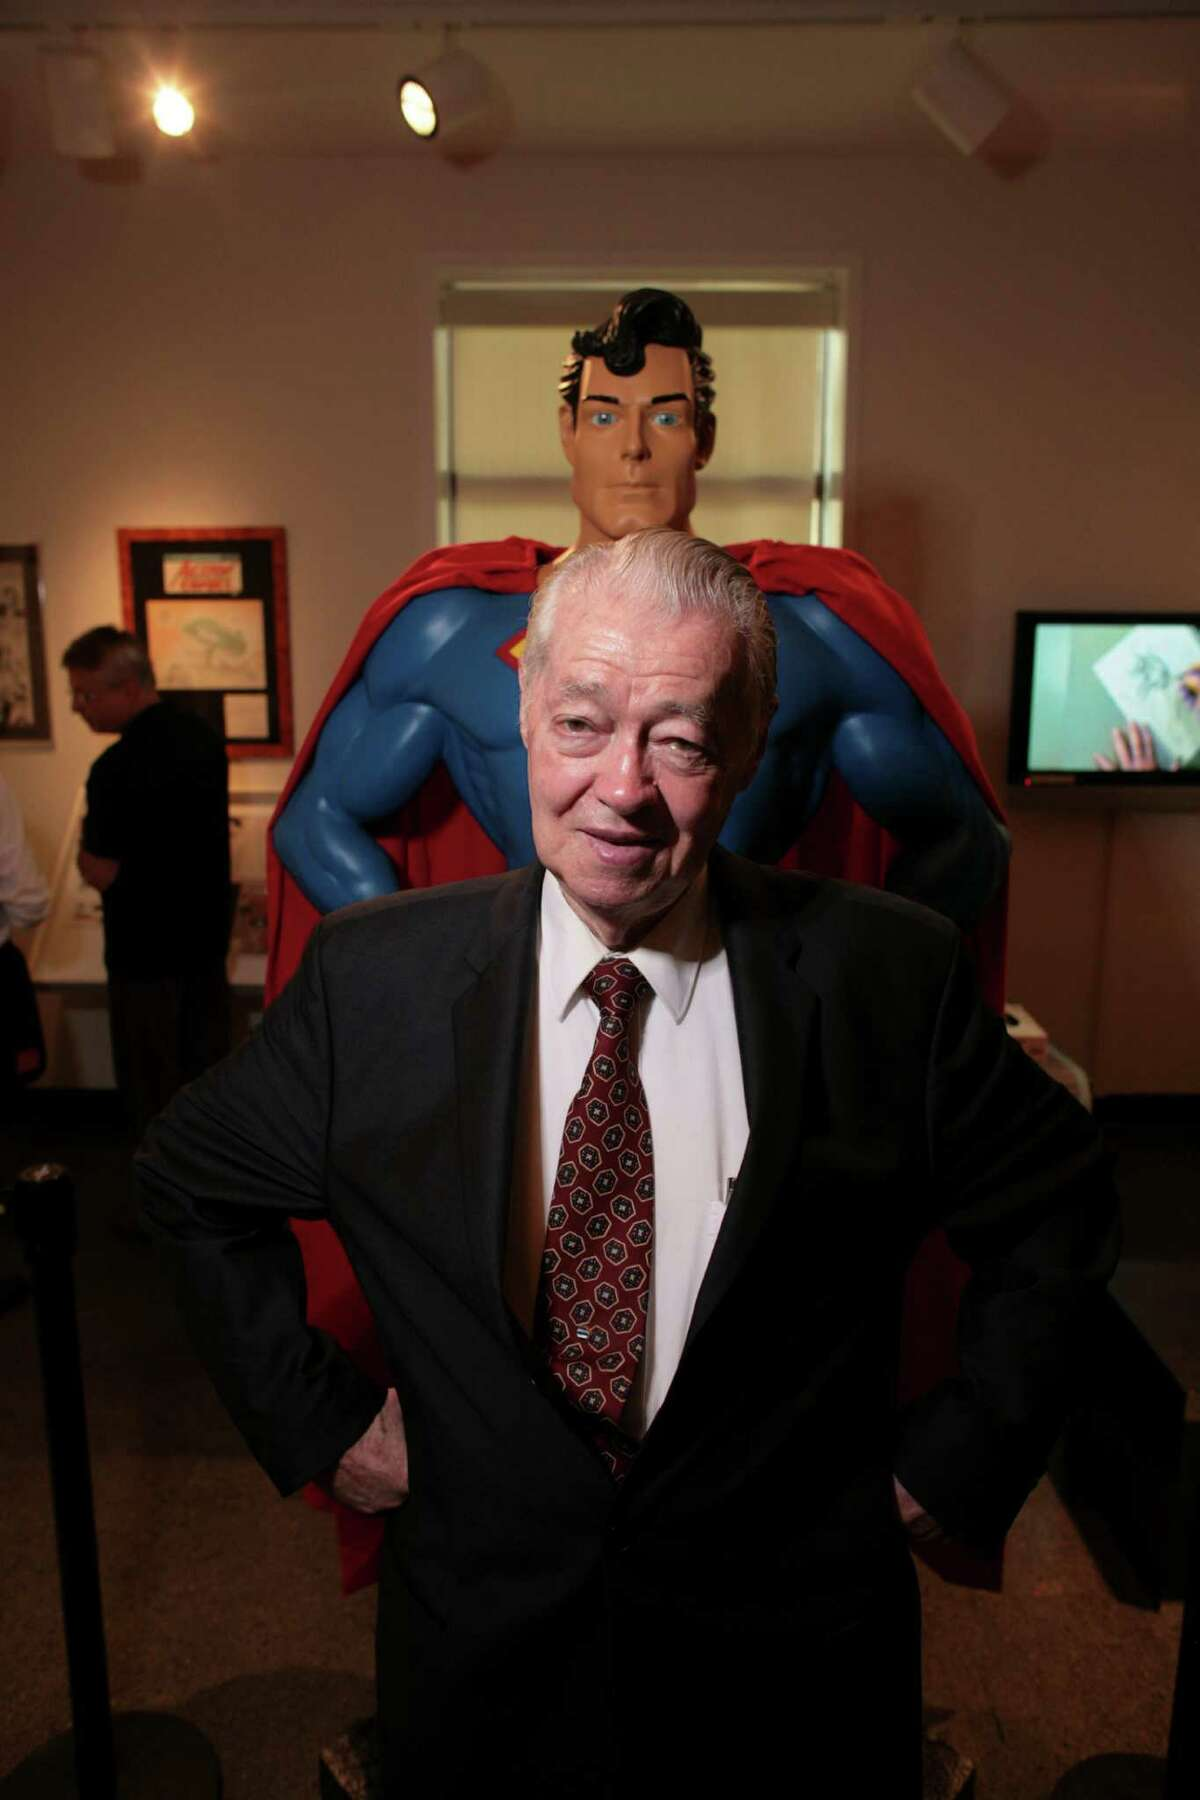 """FILE �"""" Murphy Anderson at a comic book exhibition at the Montclair Air Museum in Montclair, N.J., July 12, 2007. Anderson, a comic book artist best known for drawing superheroes for DC Comics from the 1950s to the '70s, died on Oct. 22, 2015, in Somerset, N.J. He was 89. (Fred R. Conrad/The New York Times)"""